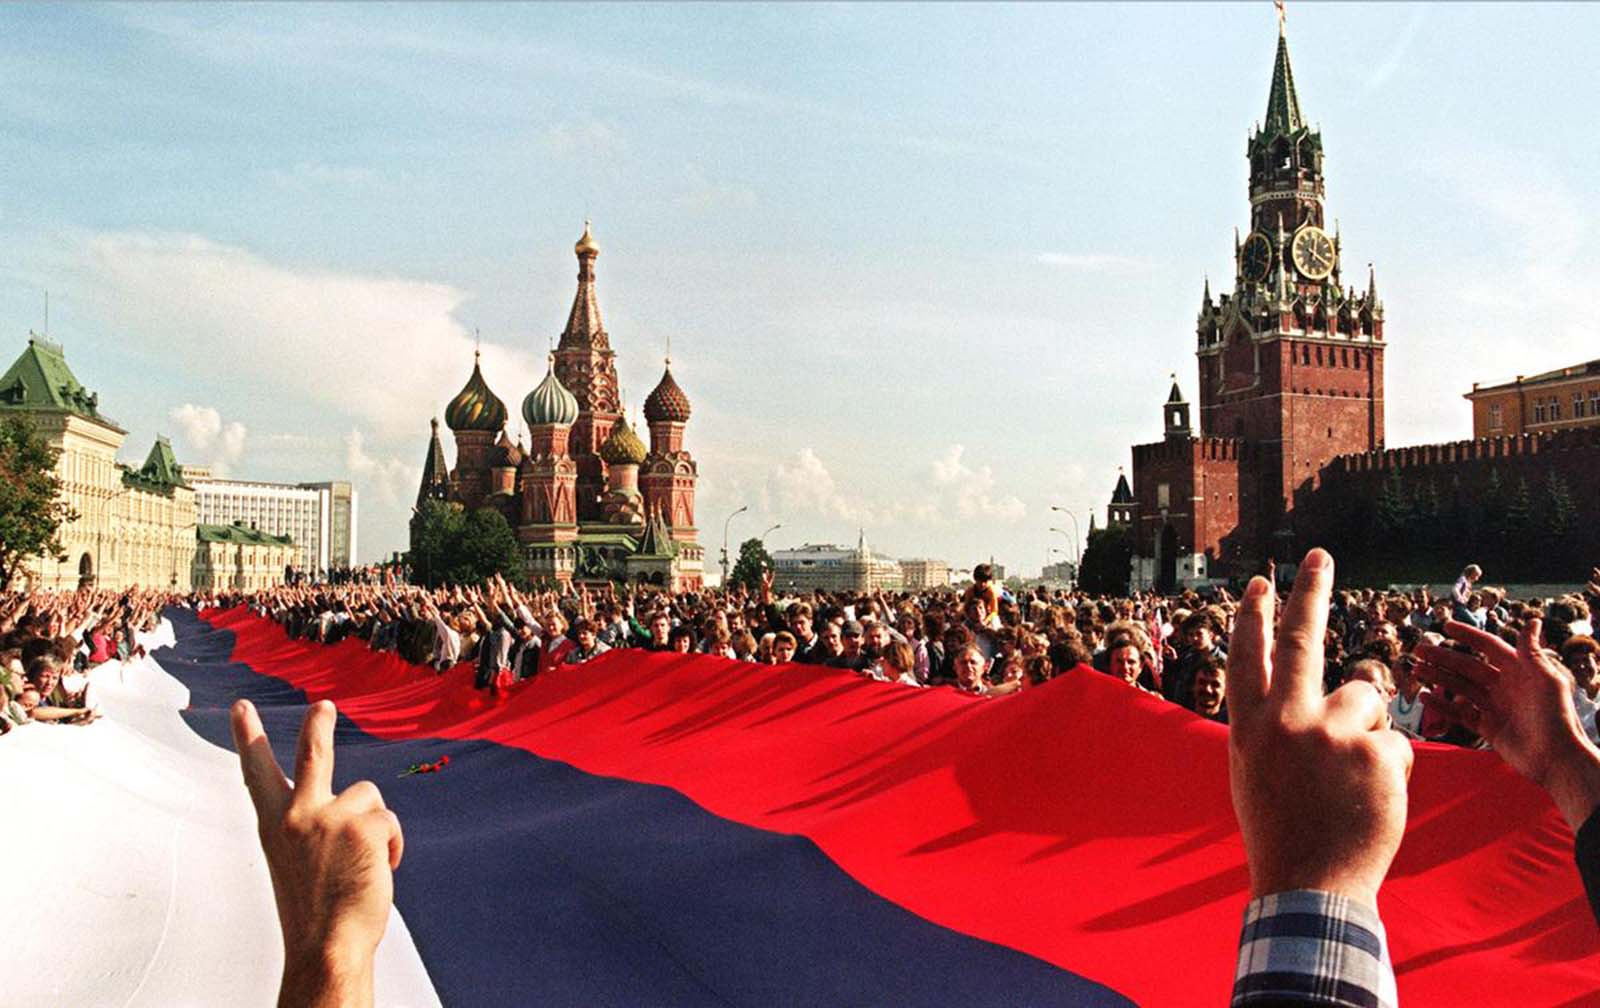 Celebrations in Moscow after the failure of the coup attempt, and remembrances of those killed in the violence, in August of 1991.